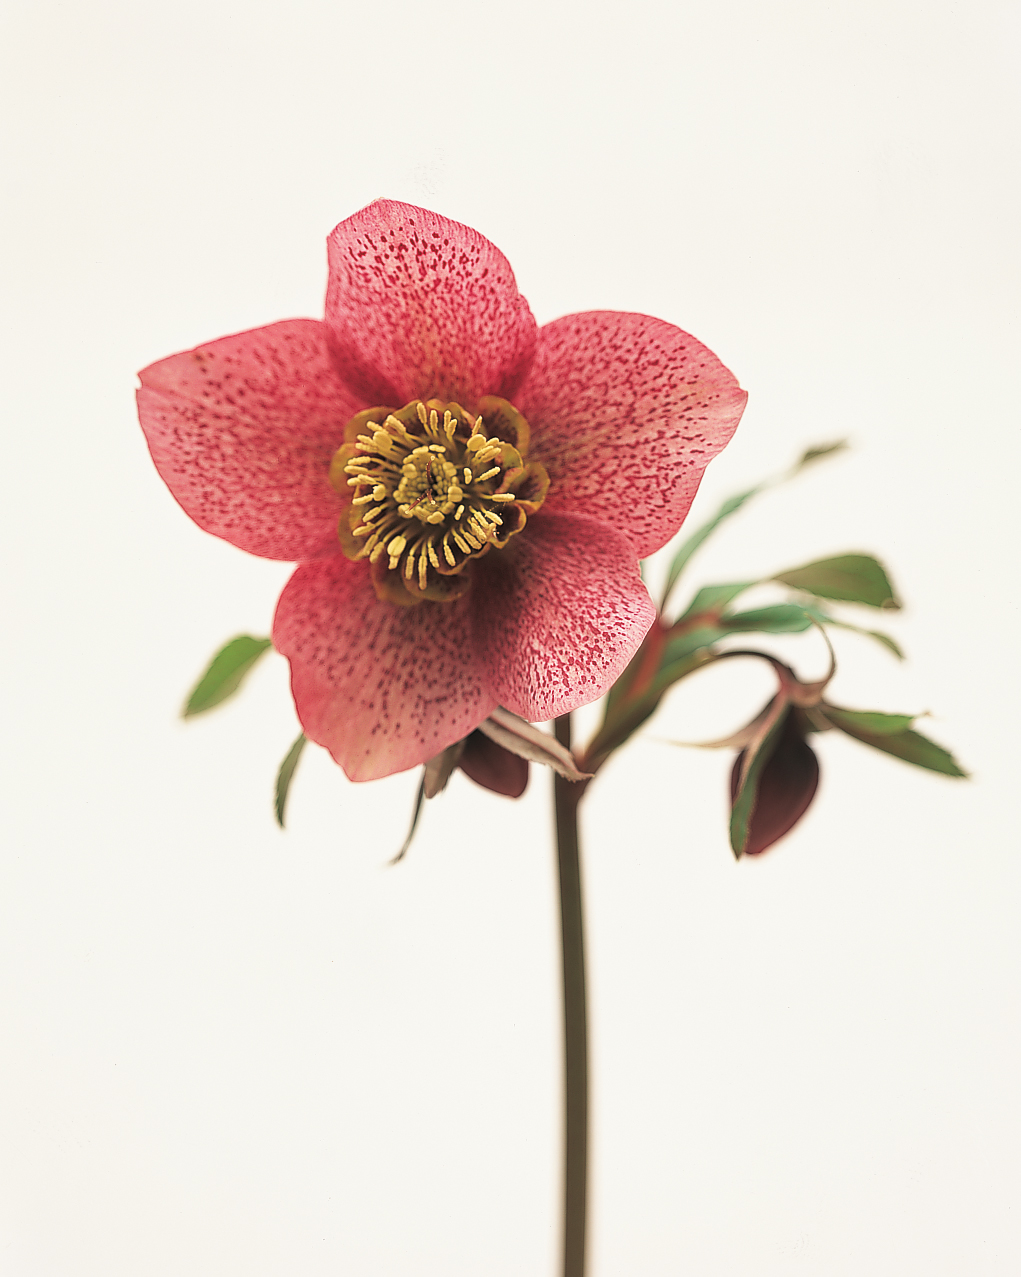 dark-pink-flower-goodthings-ml203cvr5x-0115.jpg